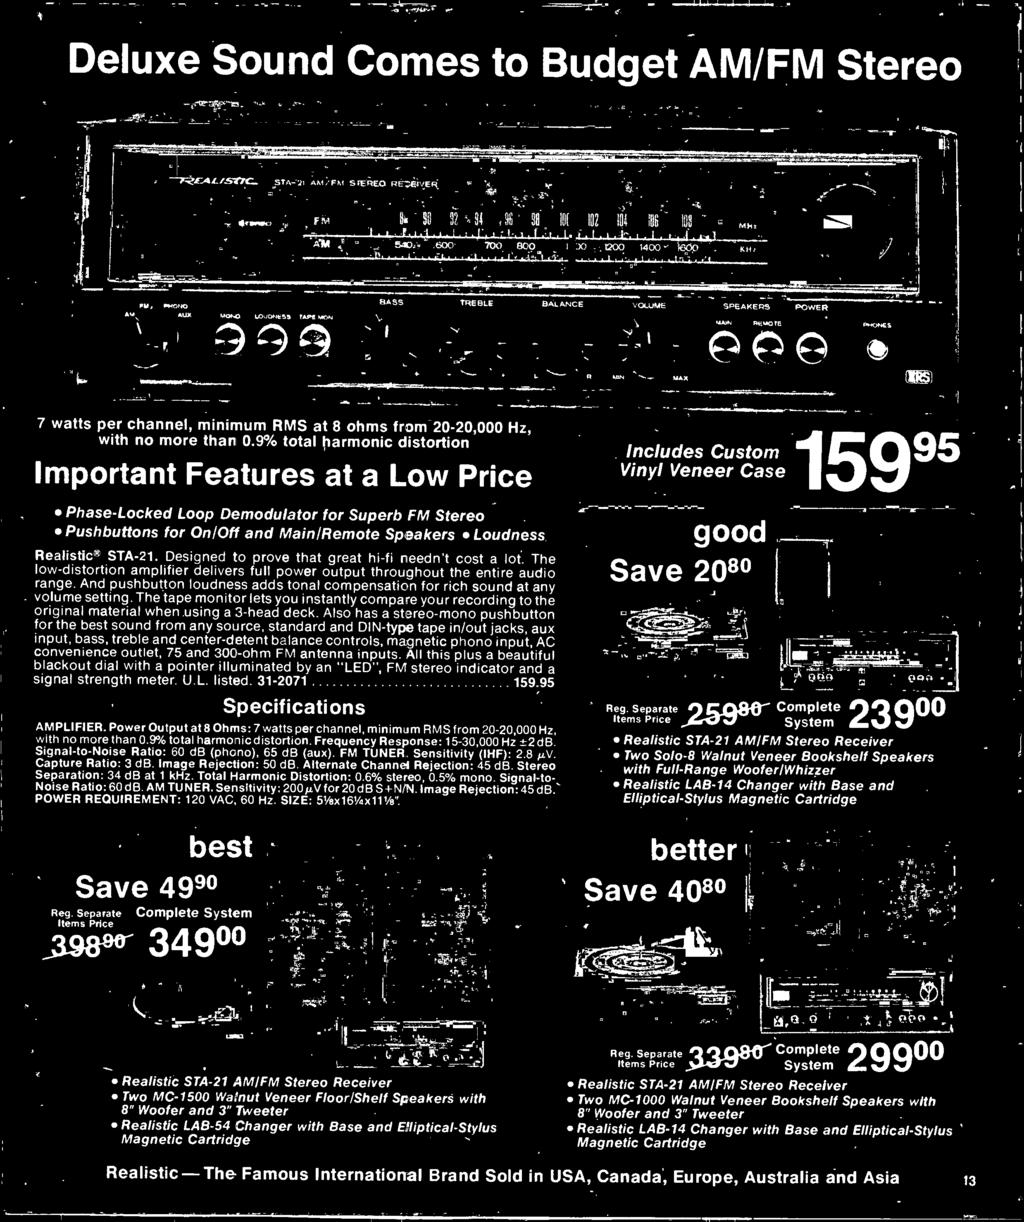 1977 Electronics Catalog Pdf Lm1800 Fm Stereo Demodulator Circuit Diagram And Pushbutton Loudness Adds Tonal Compensation For Rich Sound At Any Volume Setting The Tape